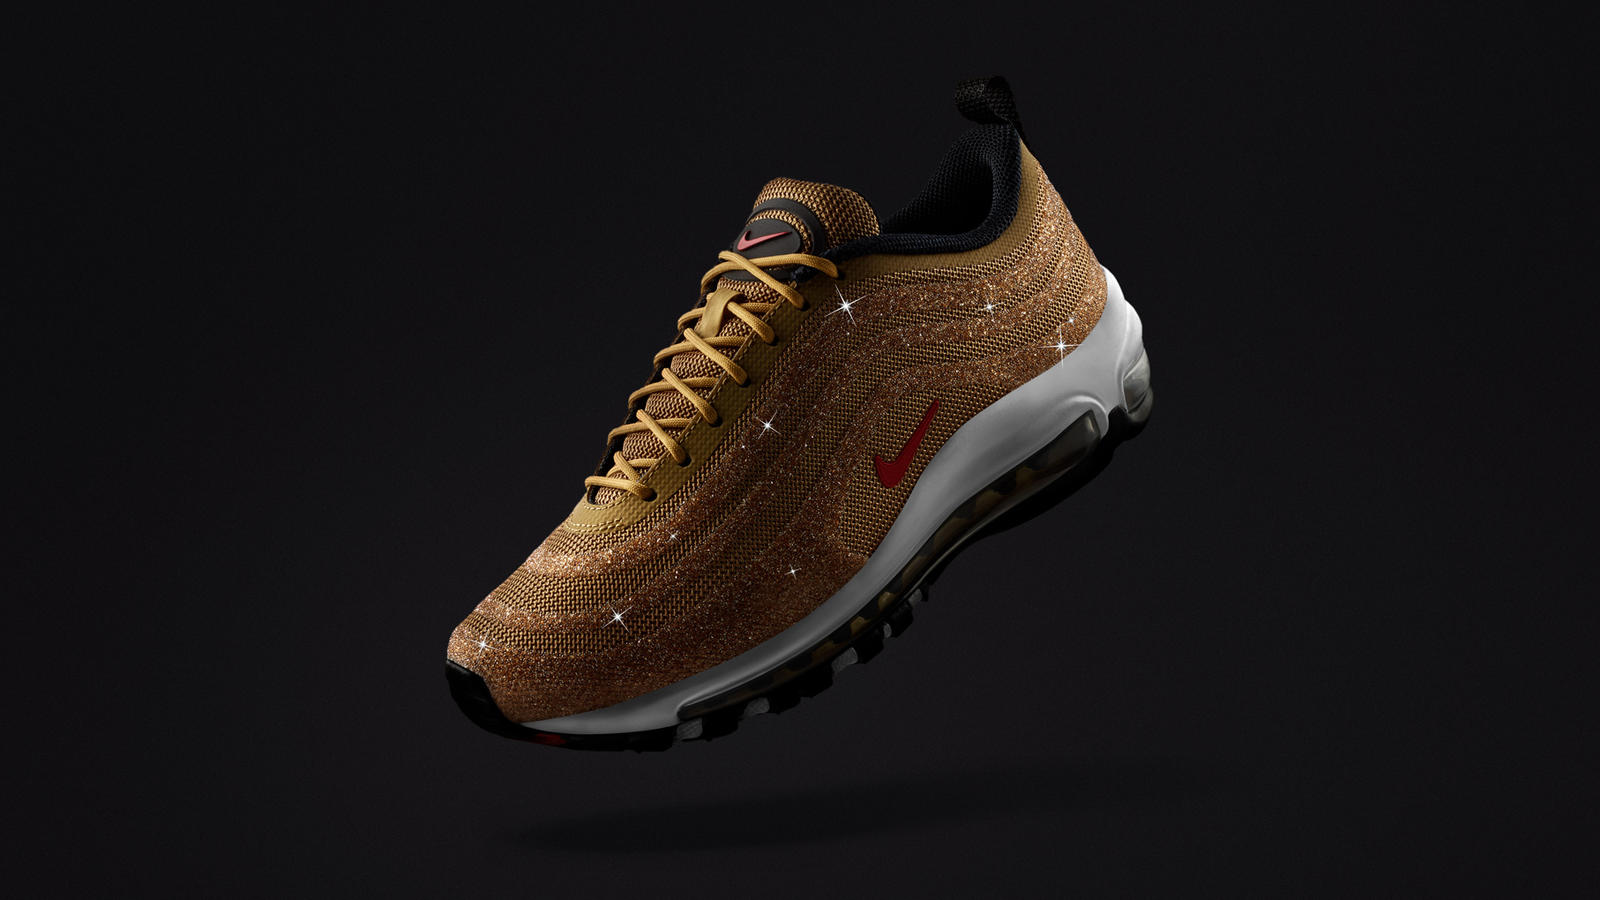 Nike Air Max 97 Gold Swarovski® Crystal - Nike News 64251a4bba